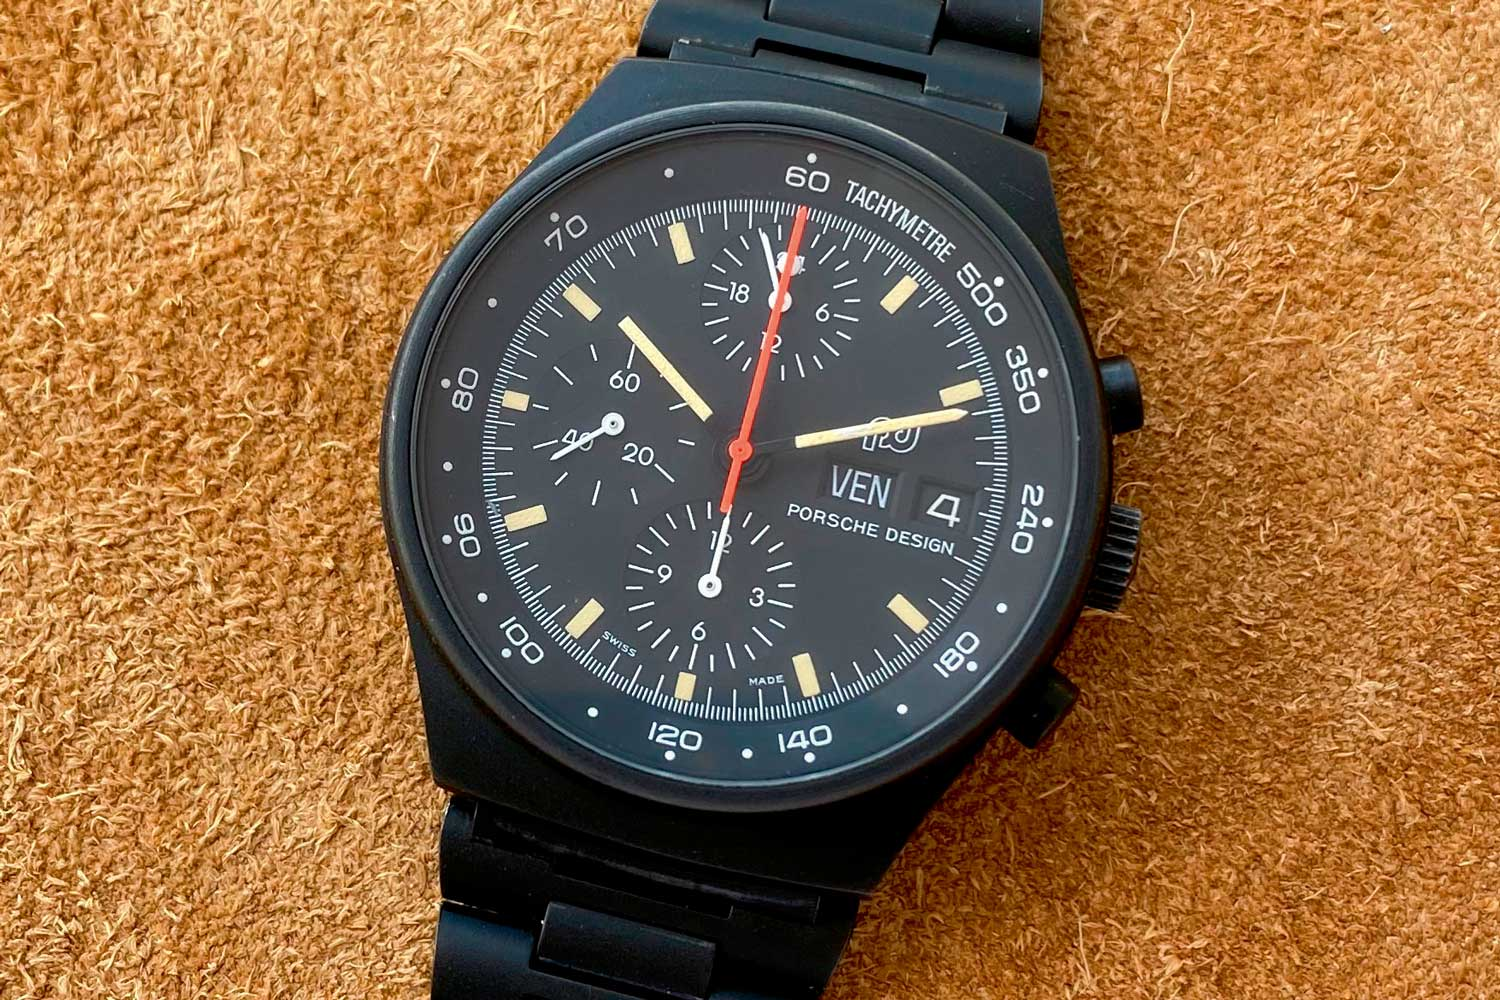 The Lemania 5100-powered version is distinguished by the 12 o'clock subdial that shows time in 24-hour format. (Image: Watchpool24)